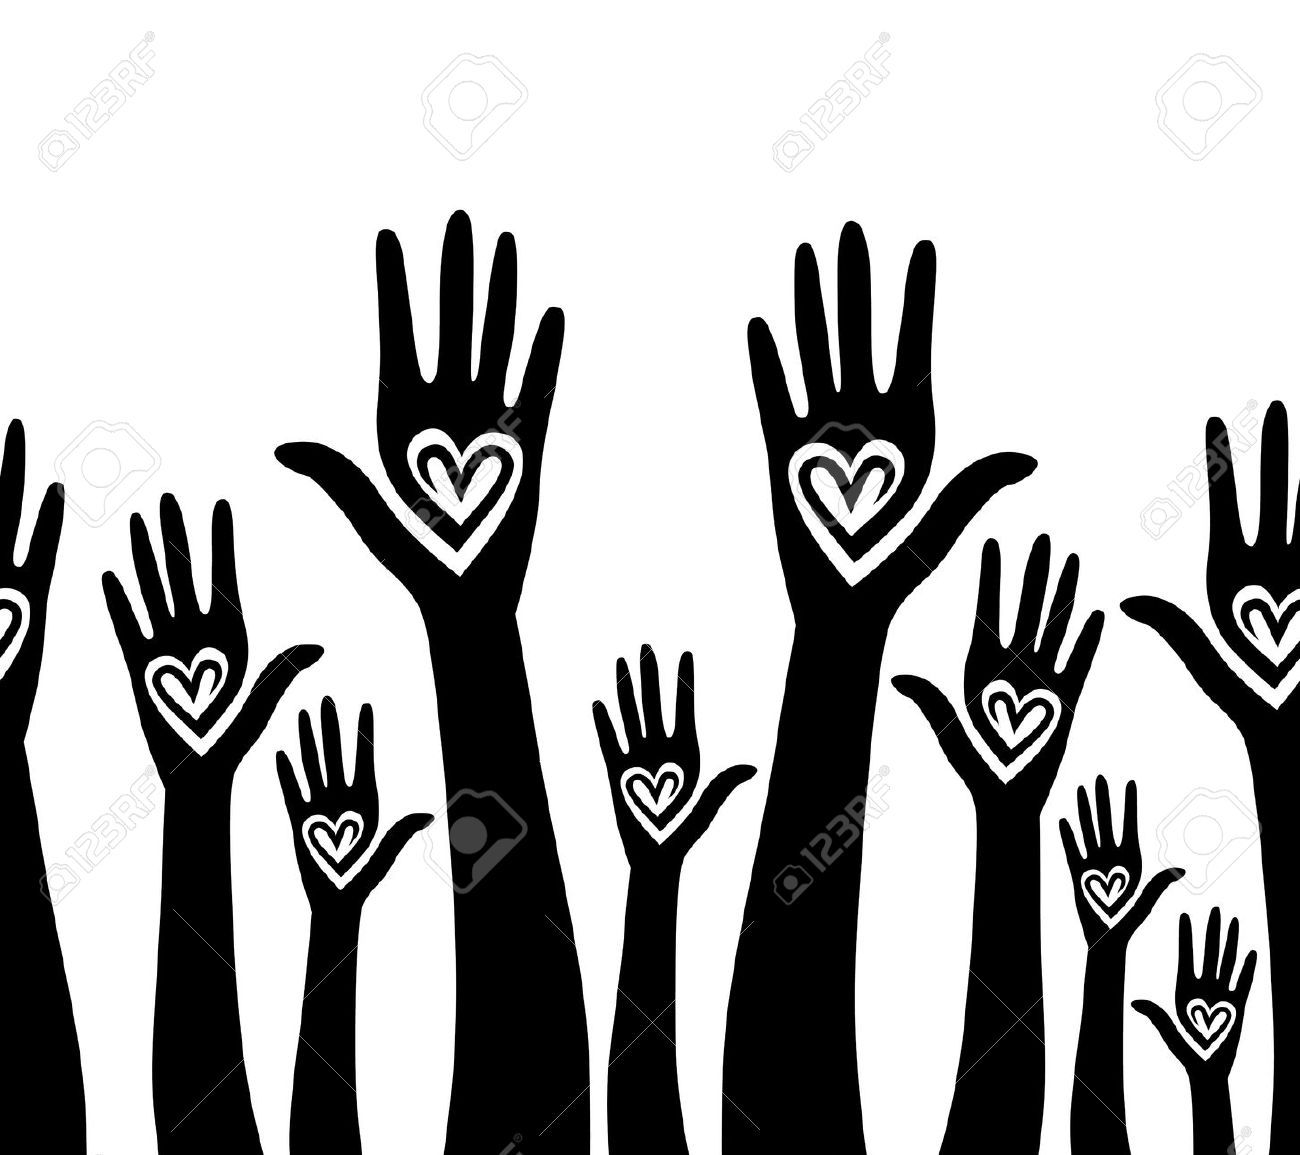 hight resolution of colorful hands with hearts over white background royalty free hand clipart seamless